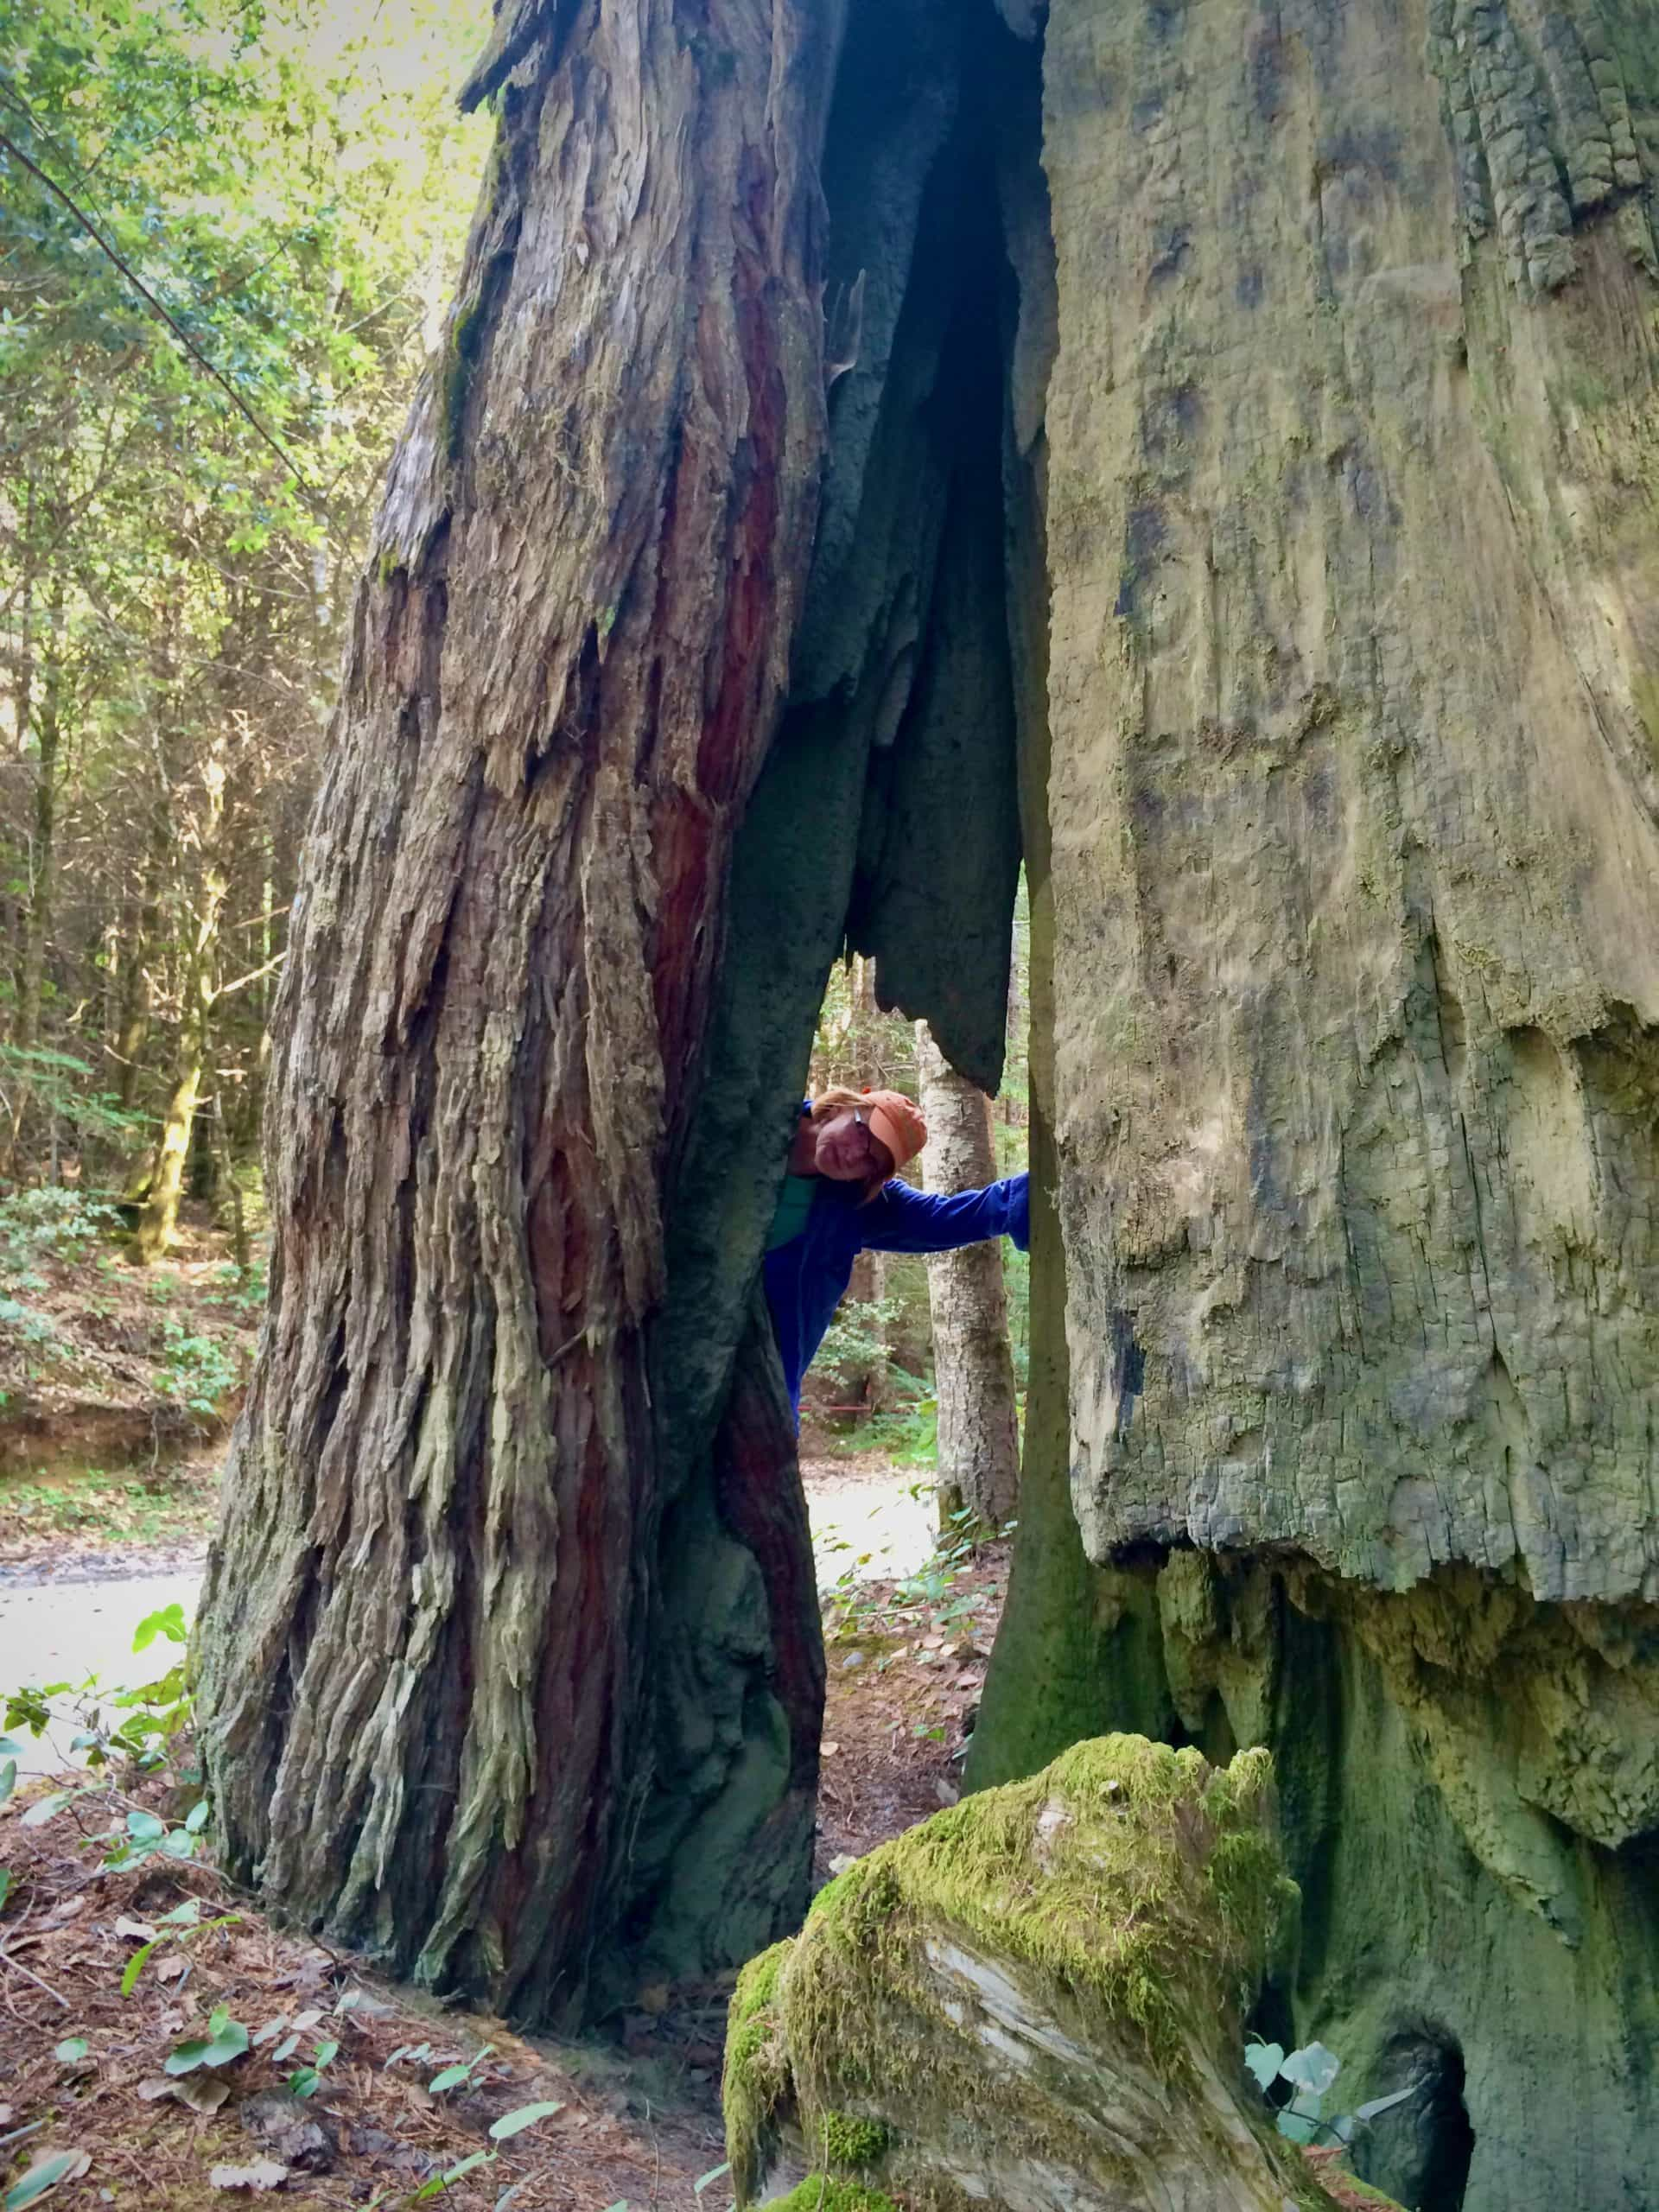 Gravel Girl standing next to big redwood tree in Redwood National park in Northern California.